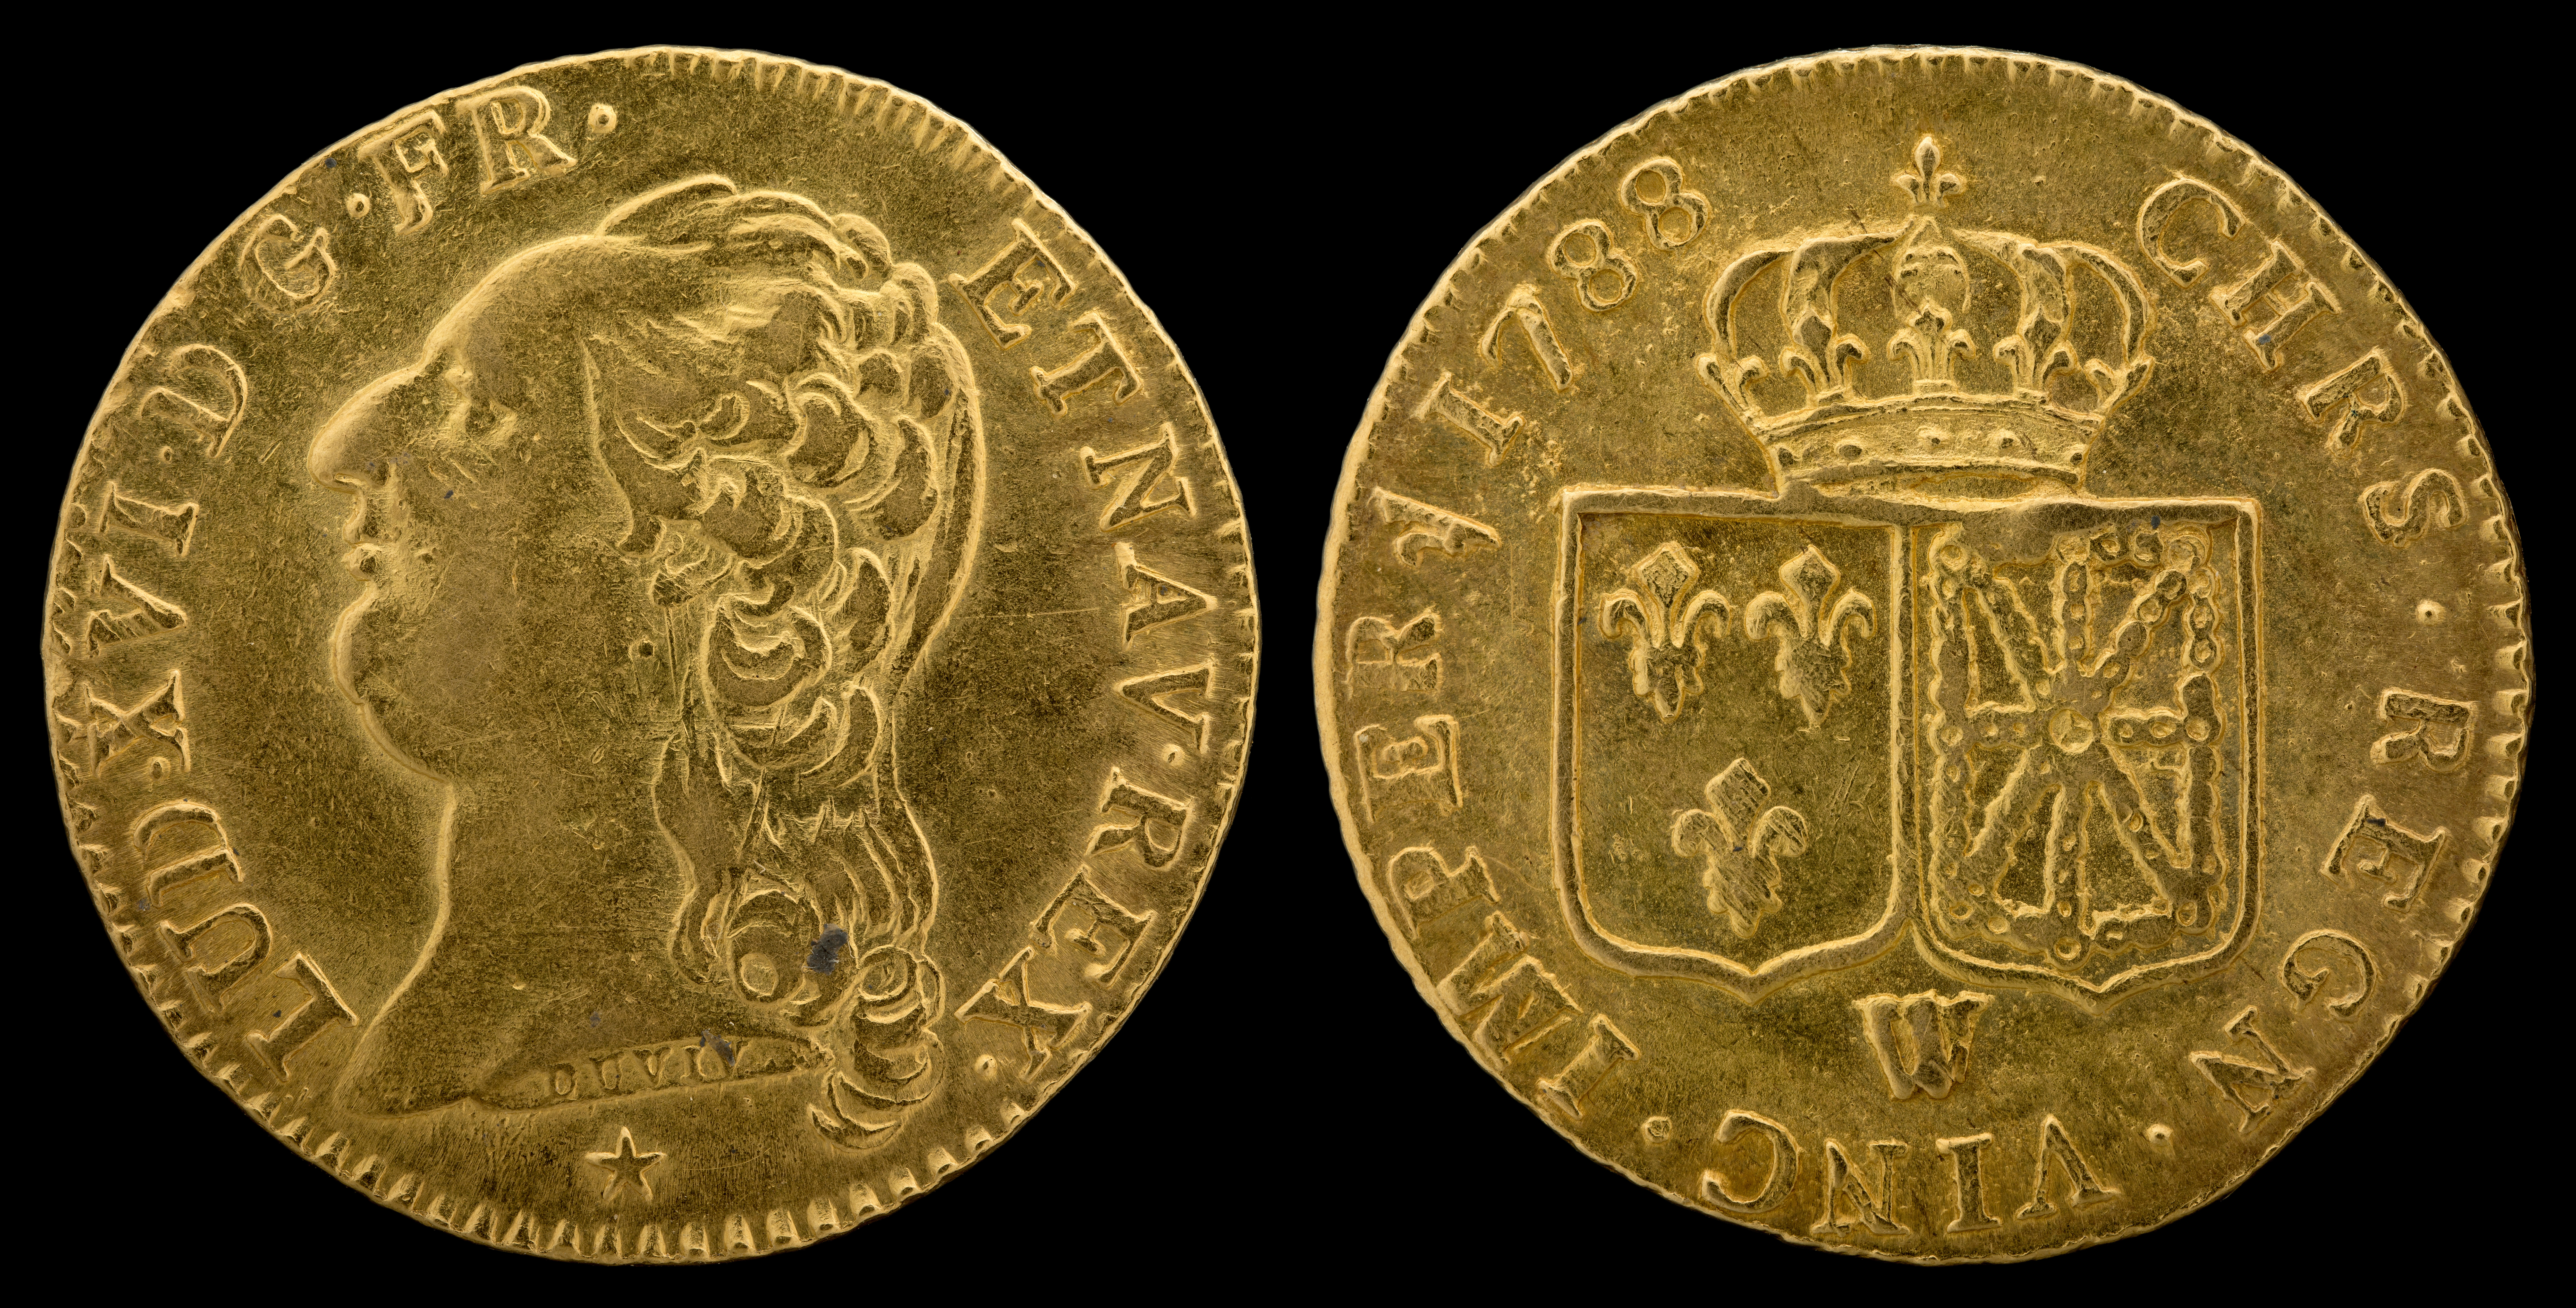 French gold coin of Louis XVI, 1788